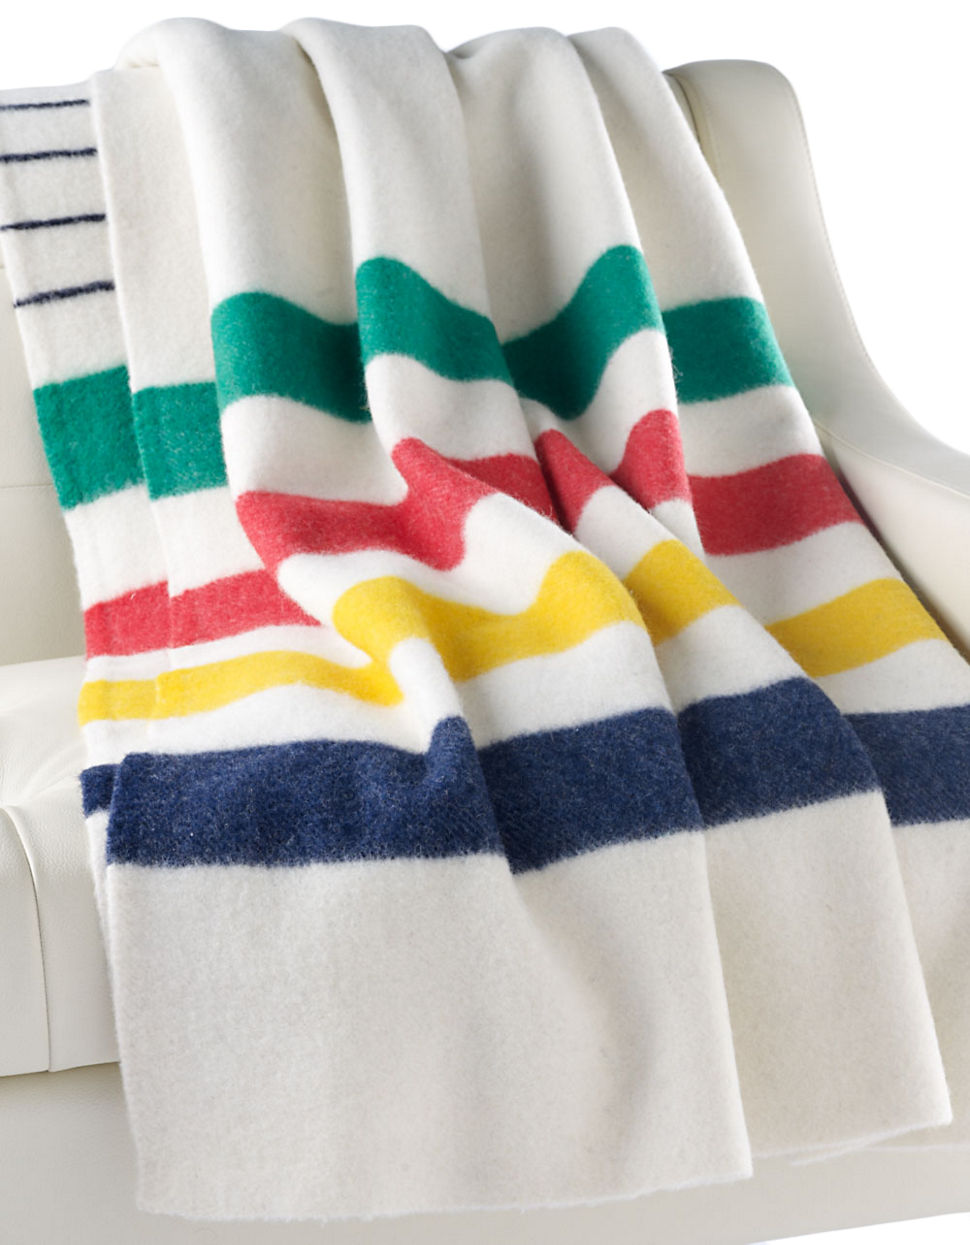 Hudson Bay blanket - Buy it for life (BIFL)